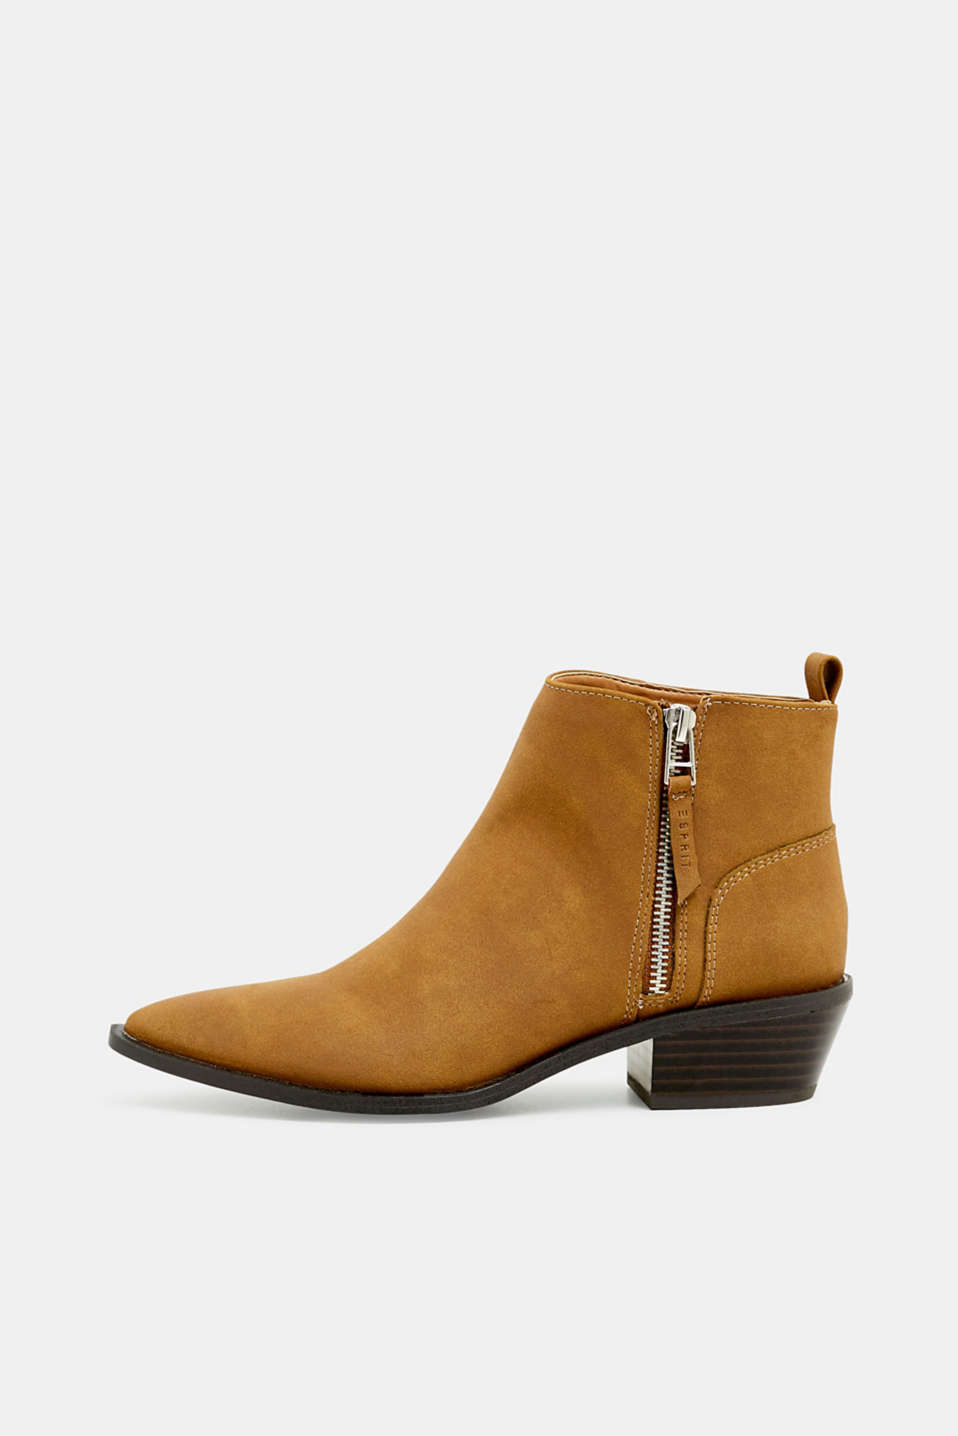 Esprit - Booties in Nubuk-Optik